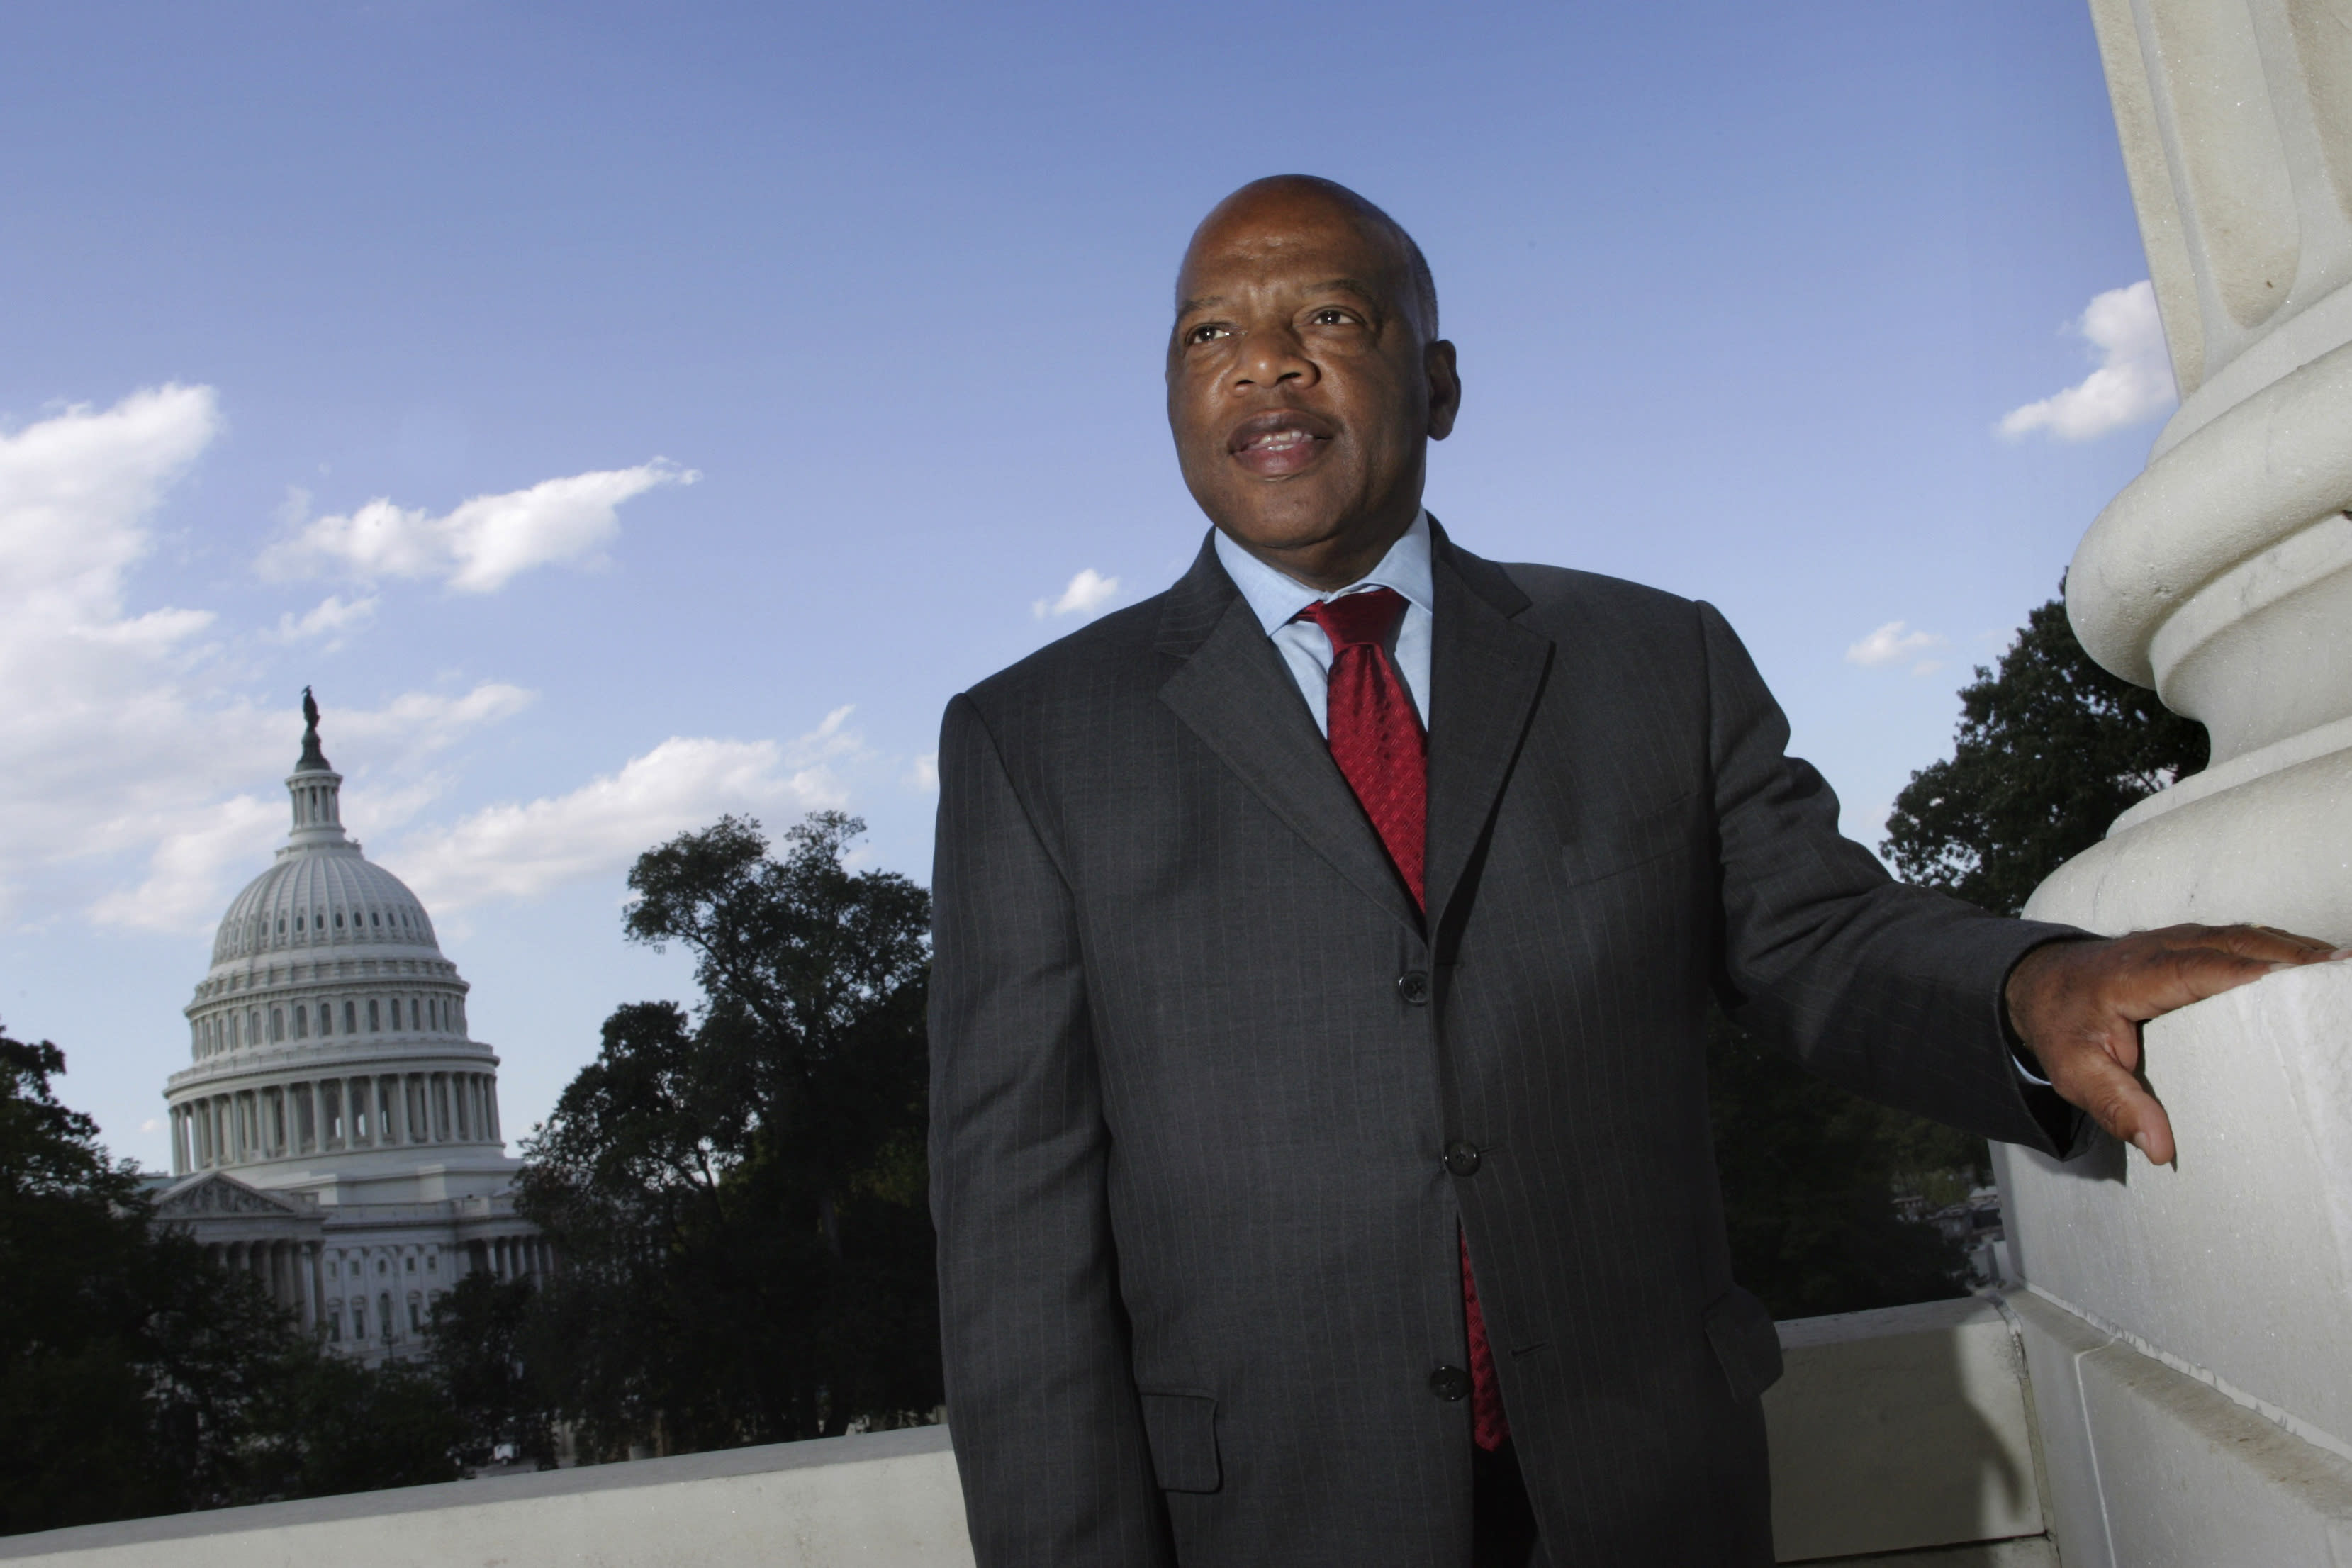 """FILE - With the Capitol Dome in the background, U.S. Rep. John Lewis, D-Ga., is seen on Capitol Hill on Oct. 10, 2007, in Washington. The success of CNN's 'RBG' film two years ago, about the late Supreme Court Justice Ruth Bader Ginsburg, led the network on a search for a similar contemporary figure whose life could be examined in historical terms. CNN's Amy Entelis says that led them to Lewis, who died of cancer in July. The film """"John Lewis: Good Trouble"""" will debut on CNN on Sunday night. (AP Photo/Lawrence Jackson, File)"""